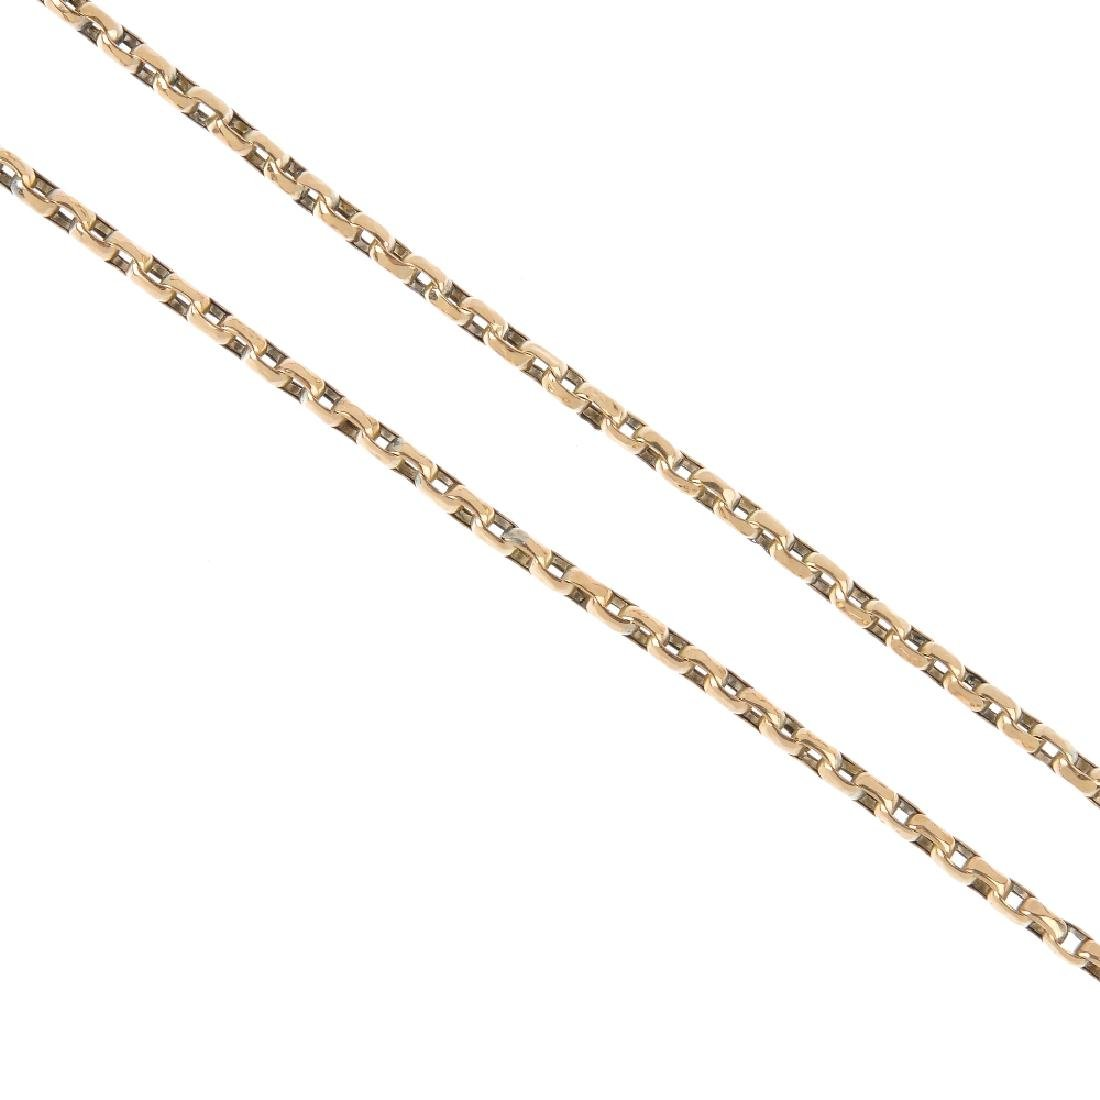 A Victorian 9ct gold longard chain. The faceted